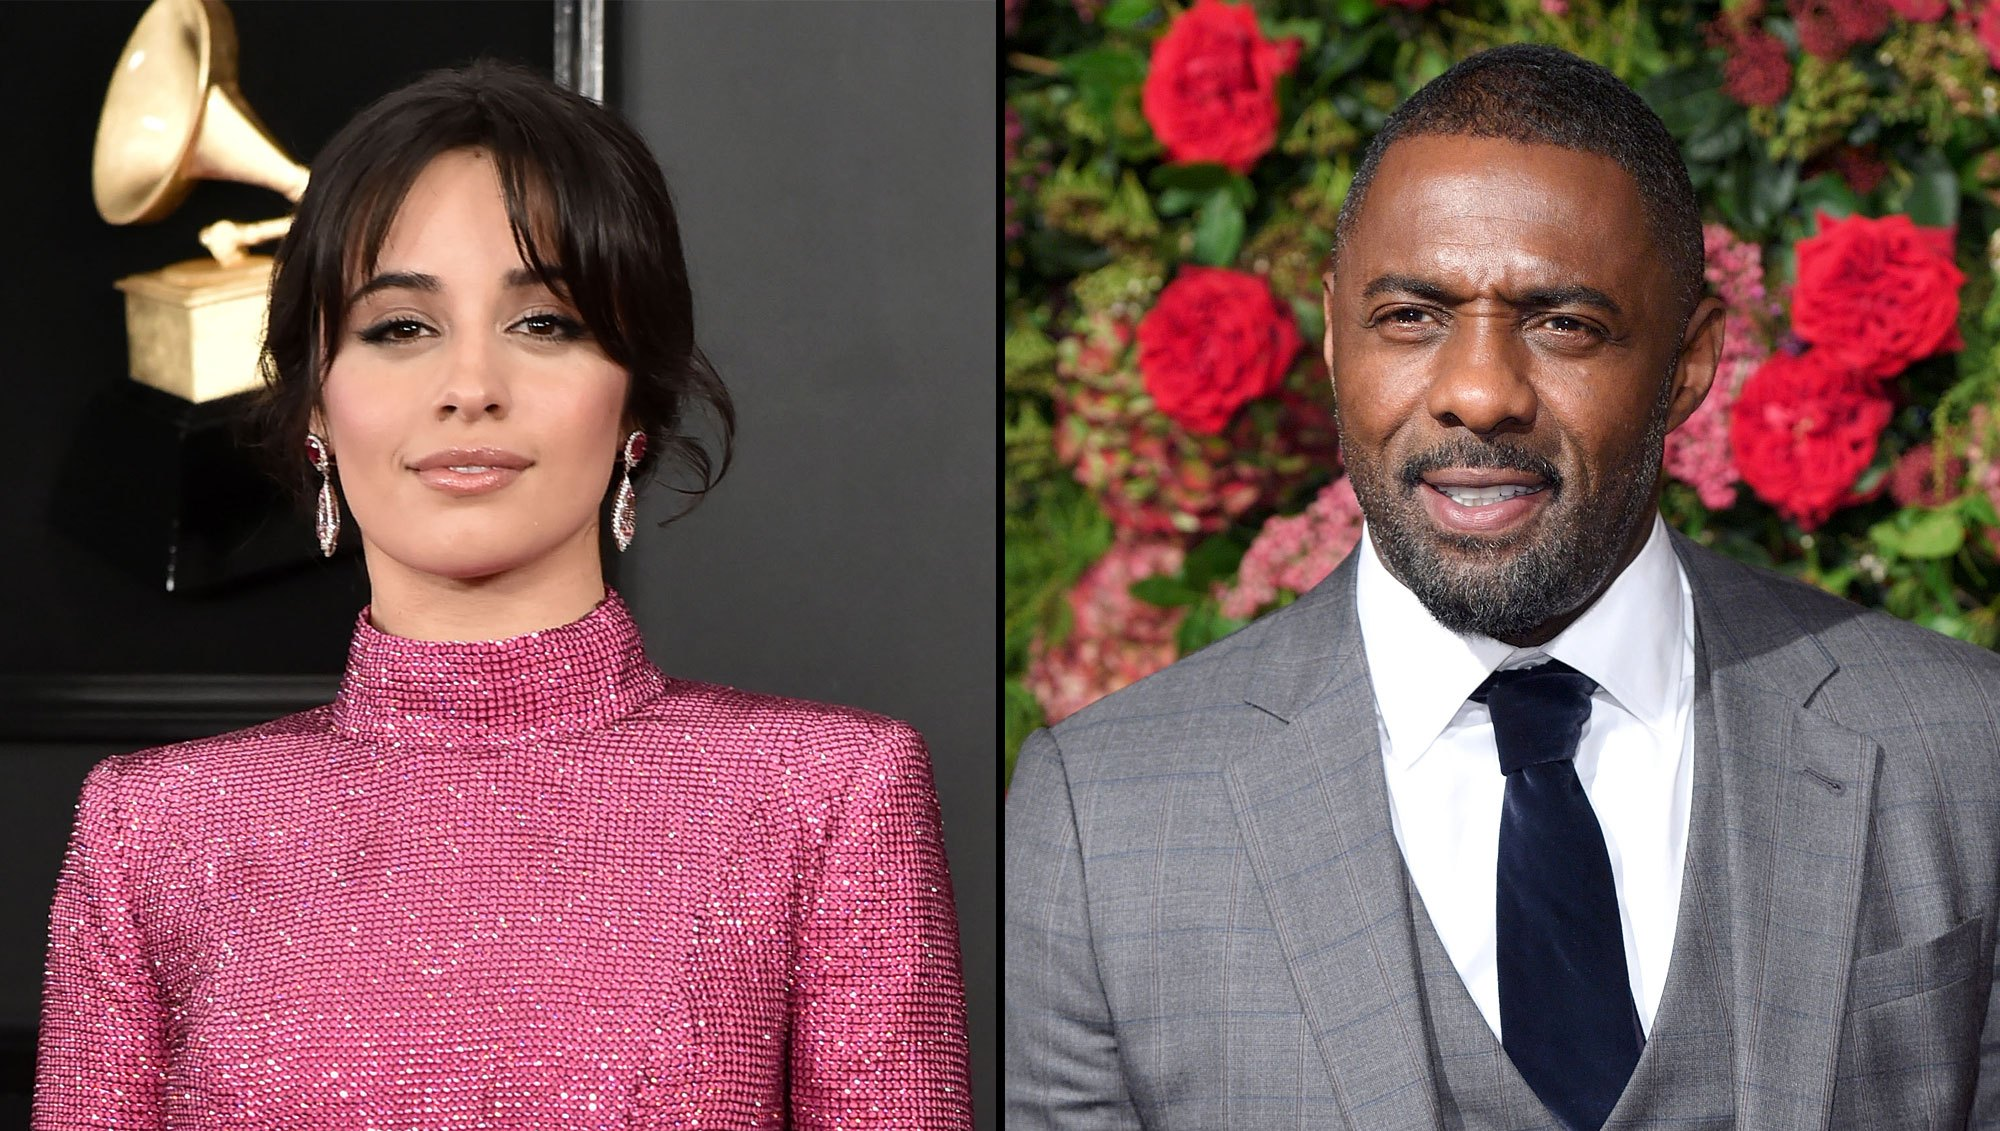 Camila Cabello and Idris Elba React to Notre Dame Fire